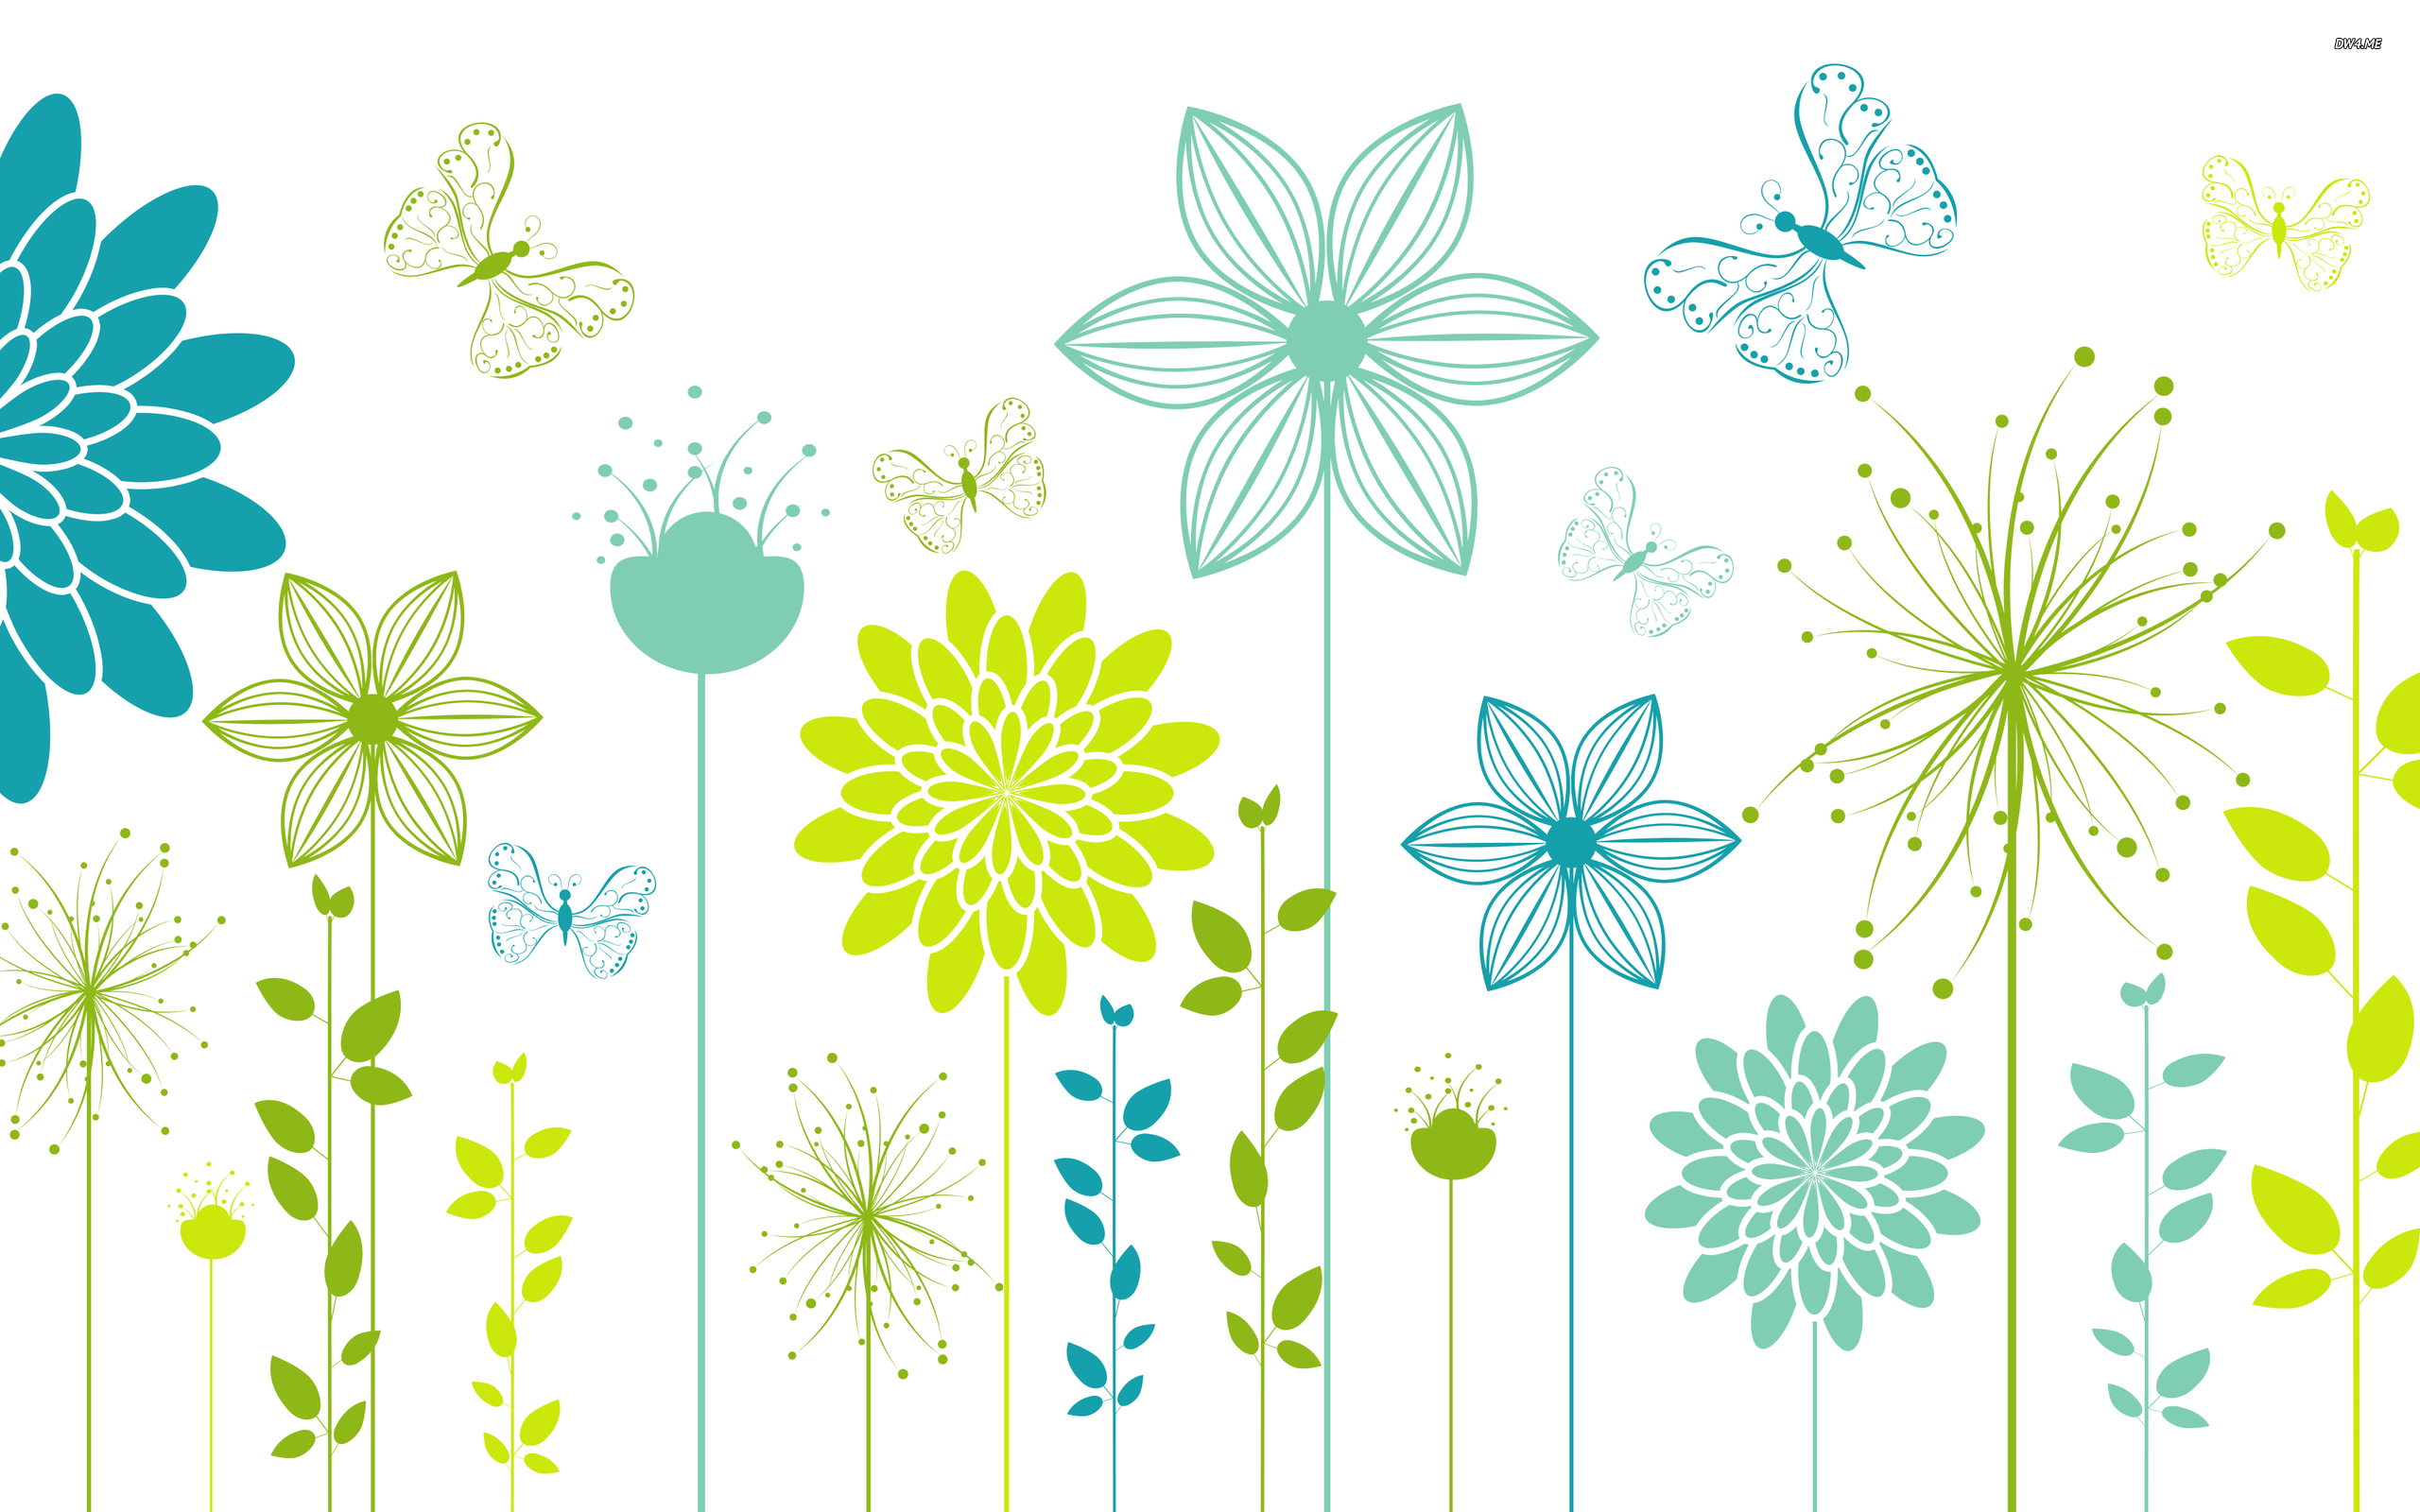 2560x1600 Butterflies And Spring Flowers On A White Surface Wallpaper